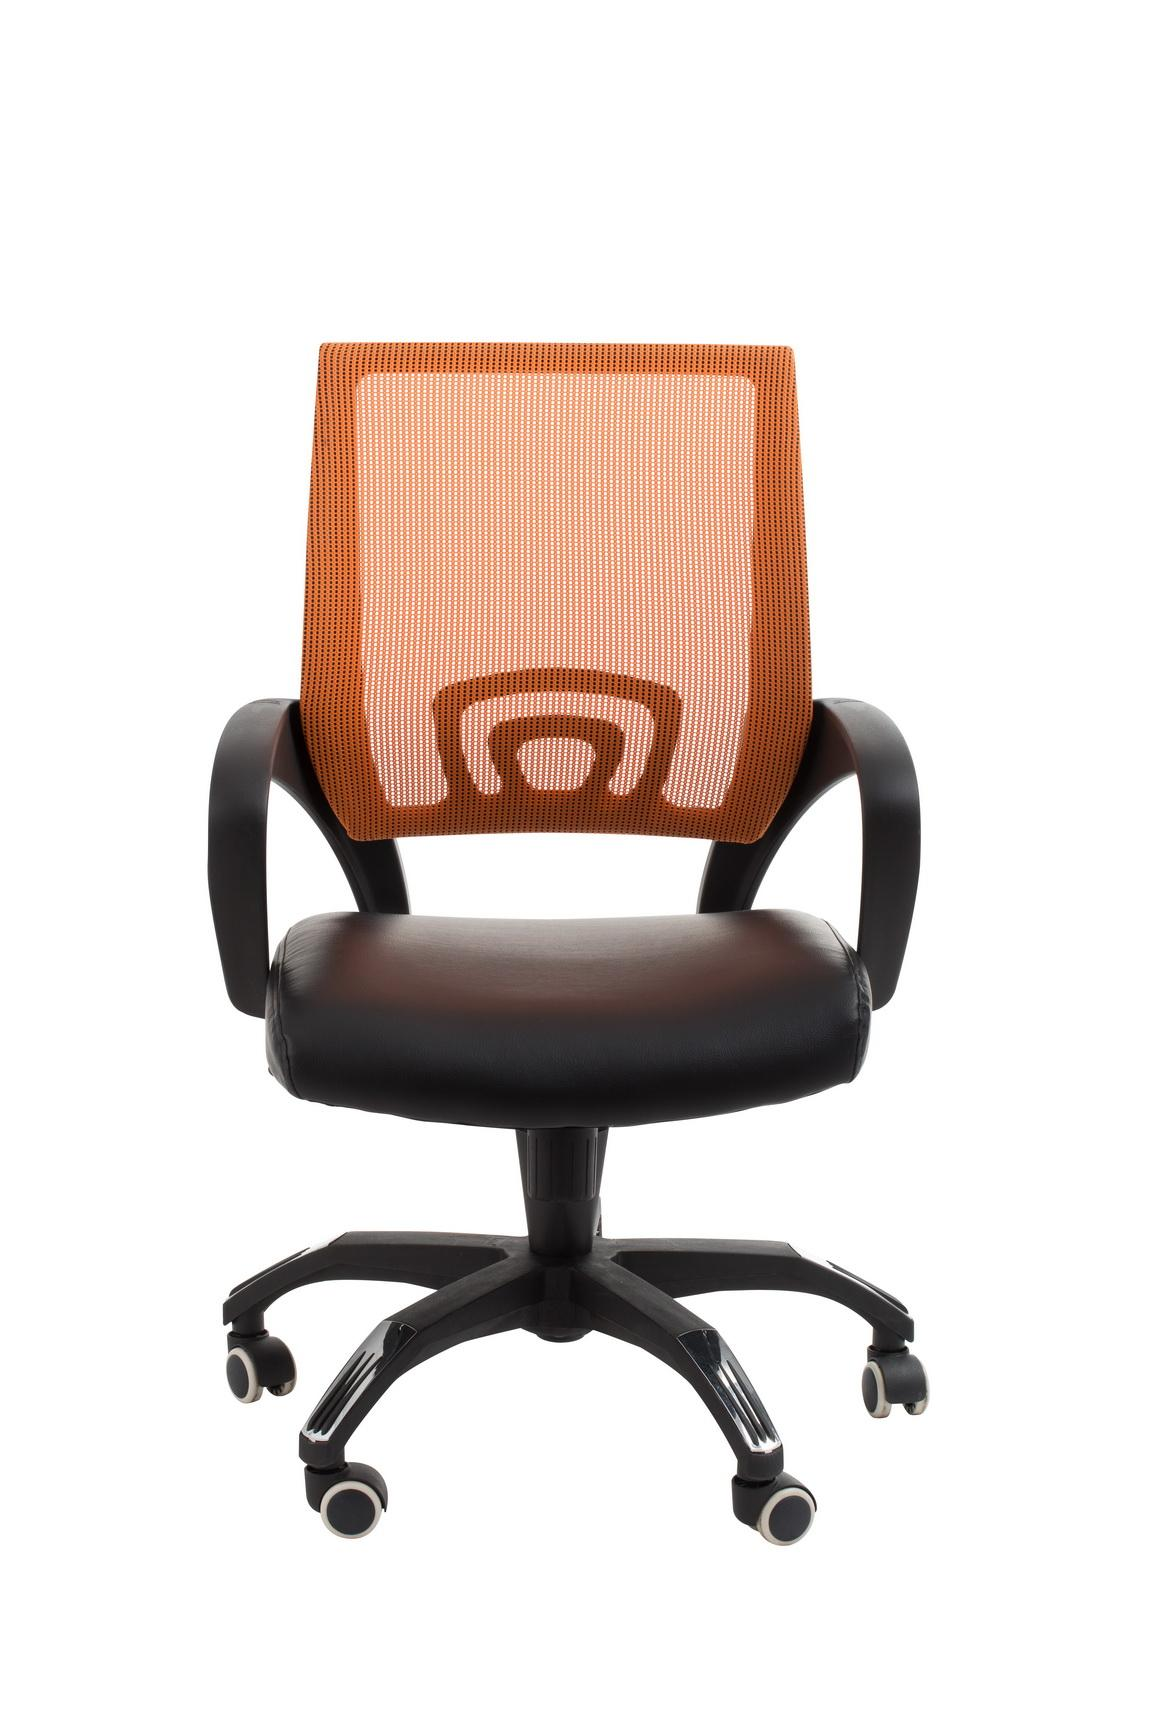 view in orange office furniture store office furnitures office rh kellysofficefurniture com au